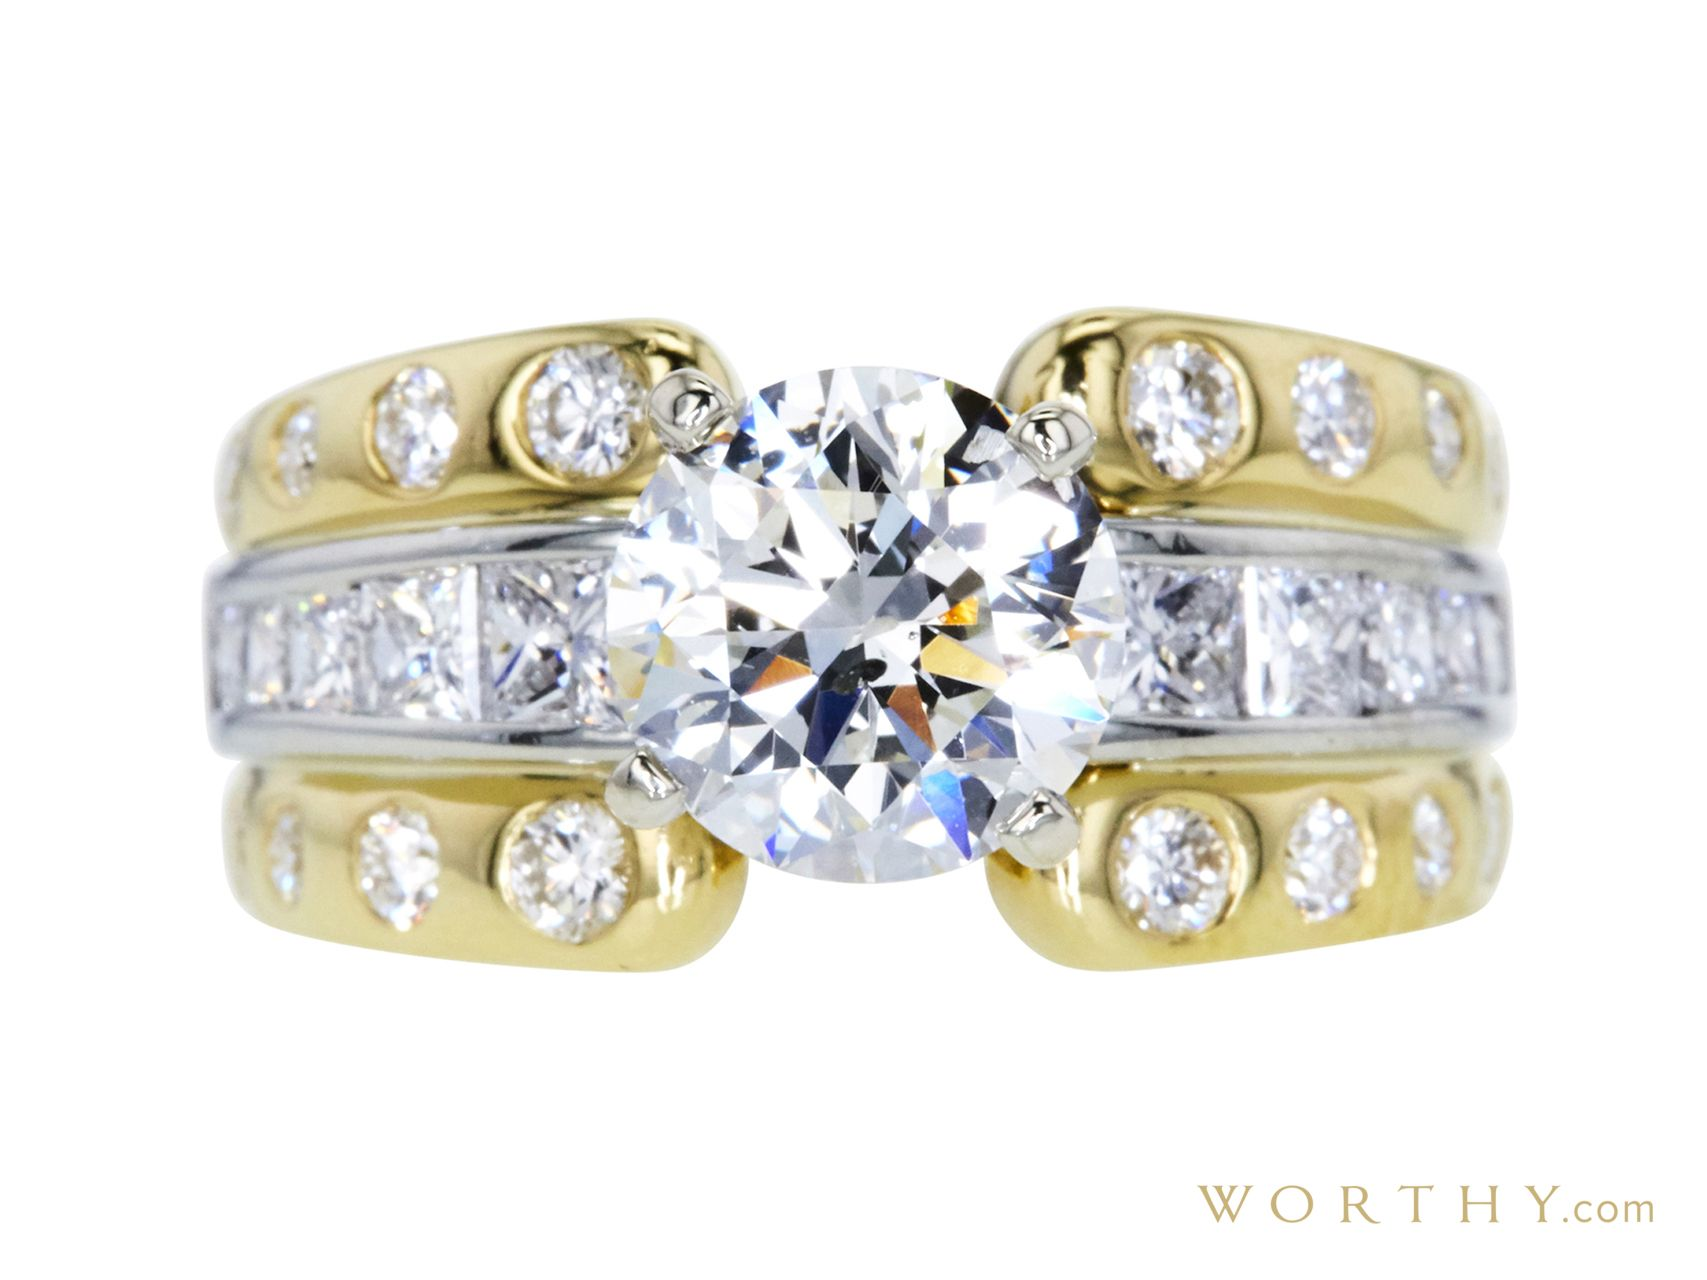 GIA 2.00 CT Round Cut Solitaire Ring, H, SI2 Sold at Auction for $6,660